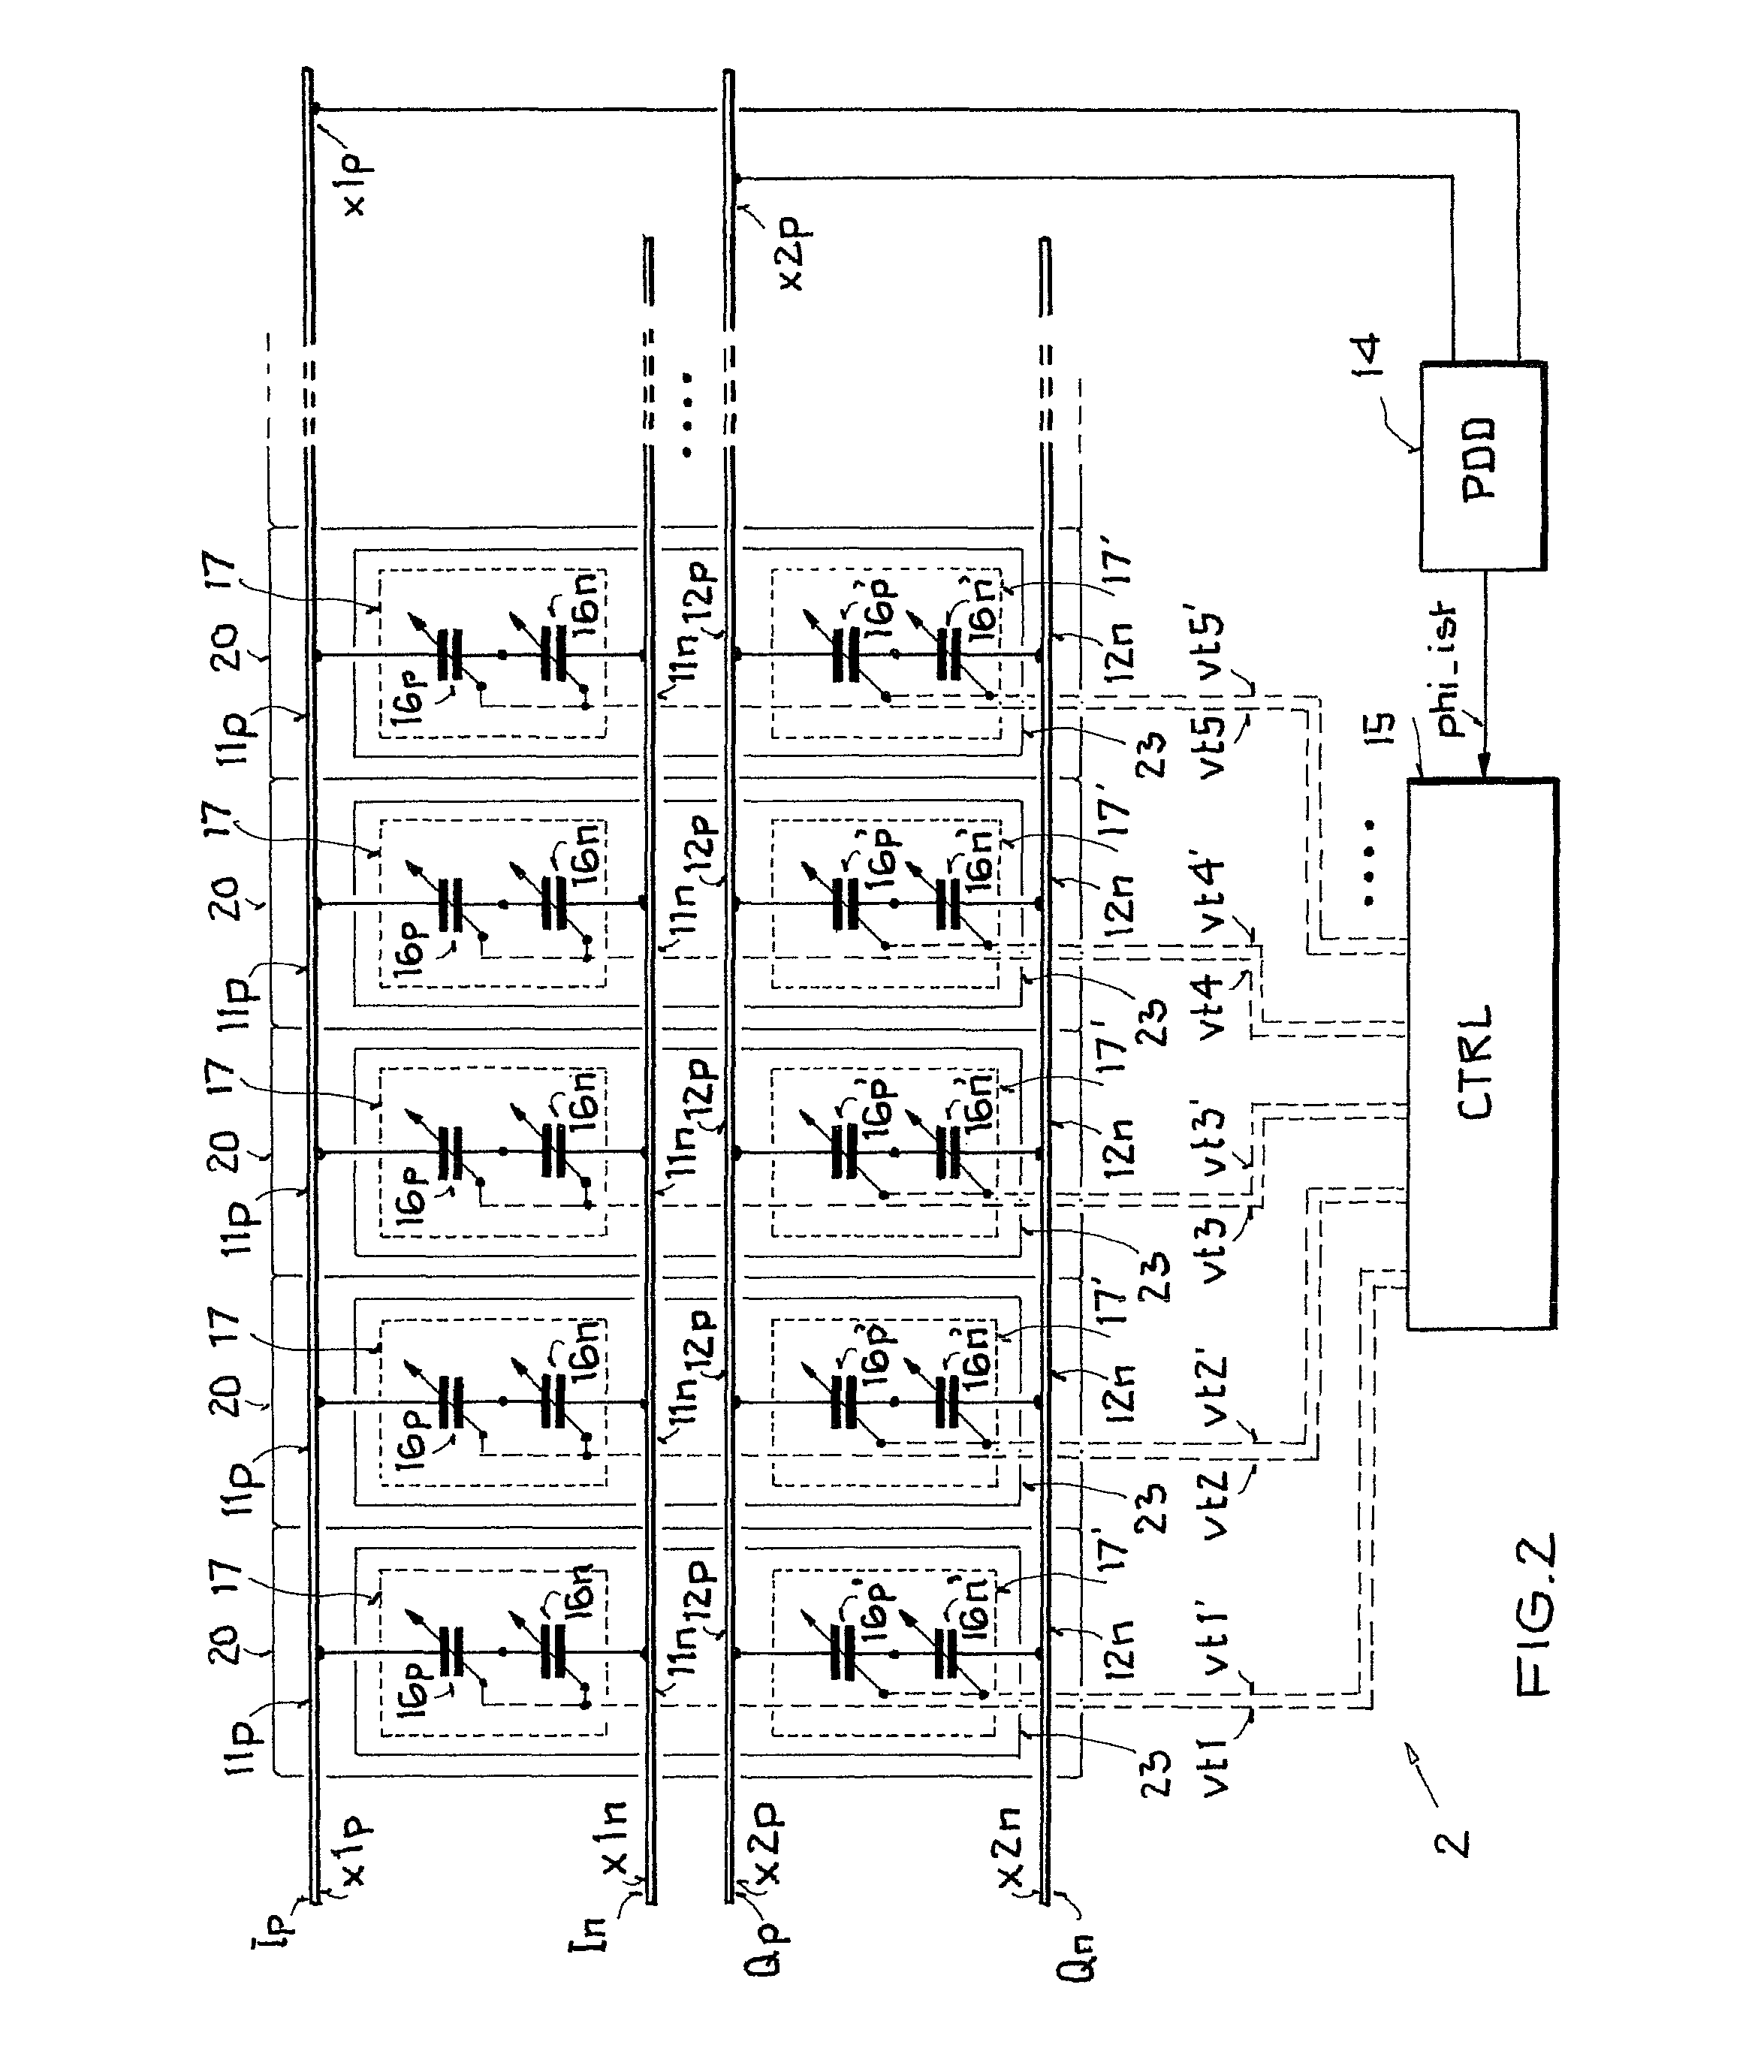 patent us7795991 - integrated circuit arrangement to set a phase difference